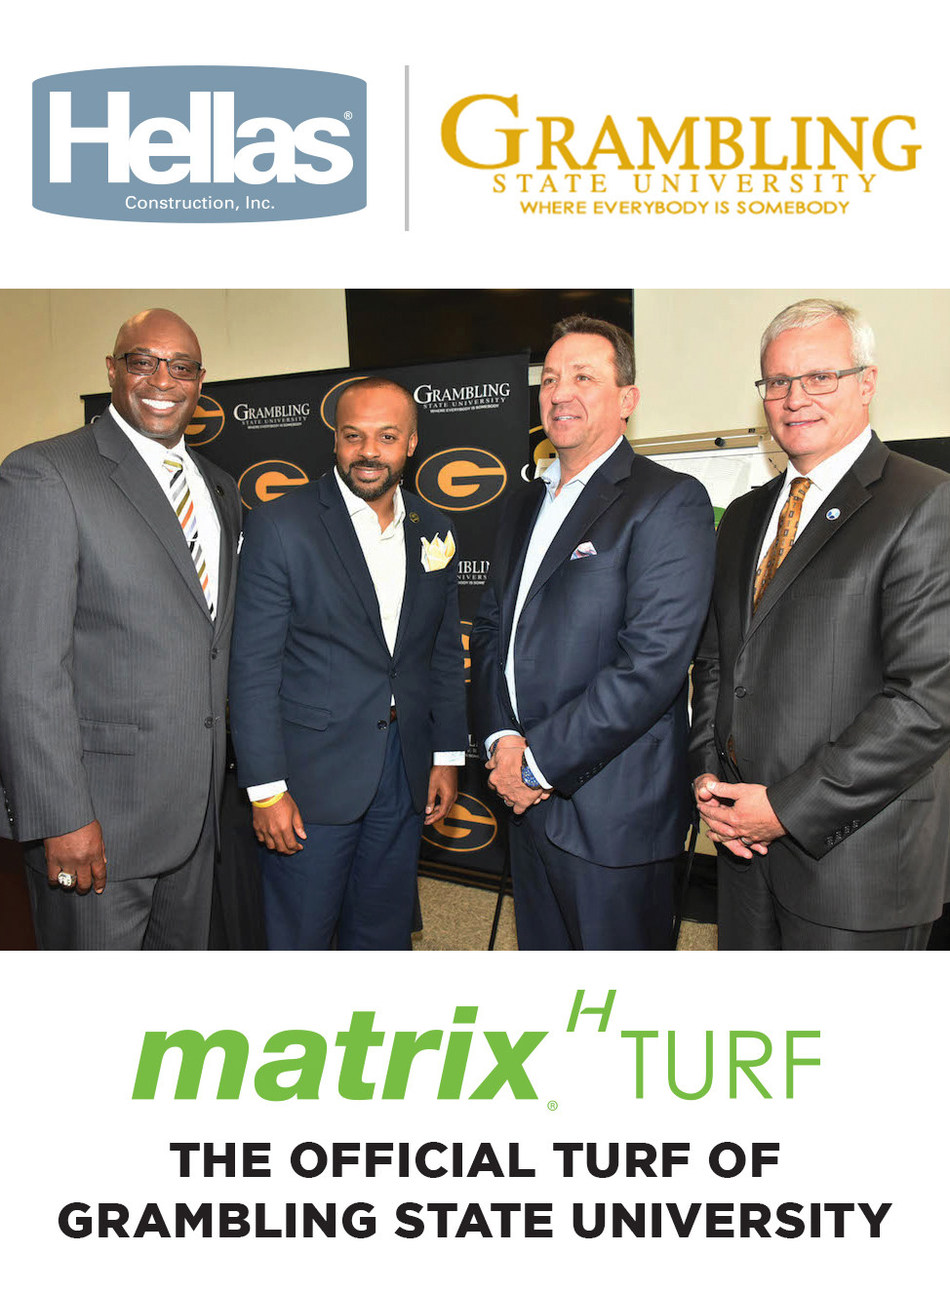 Grambling's Athletic Director Paul Bryant and Head Coach Broderick Fobbs with Hellas President Reed Seaton and Origin Bank President/CEO Drake Mills during the press conference announcing the renovations of Eddie G. Robinson Memorial Stadium in May 2017. A Grambling University Foundation partnership with Origin Bank and Coca-Cola is helping make the estimated $1.5 million to $2 million project possible.